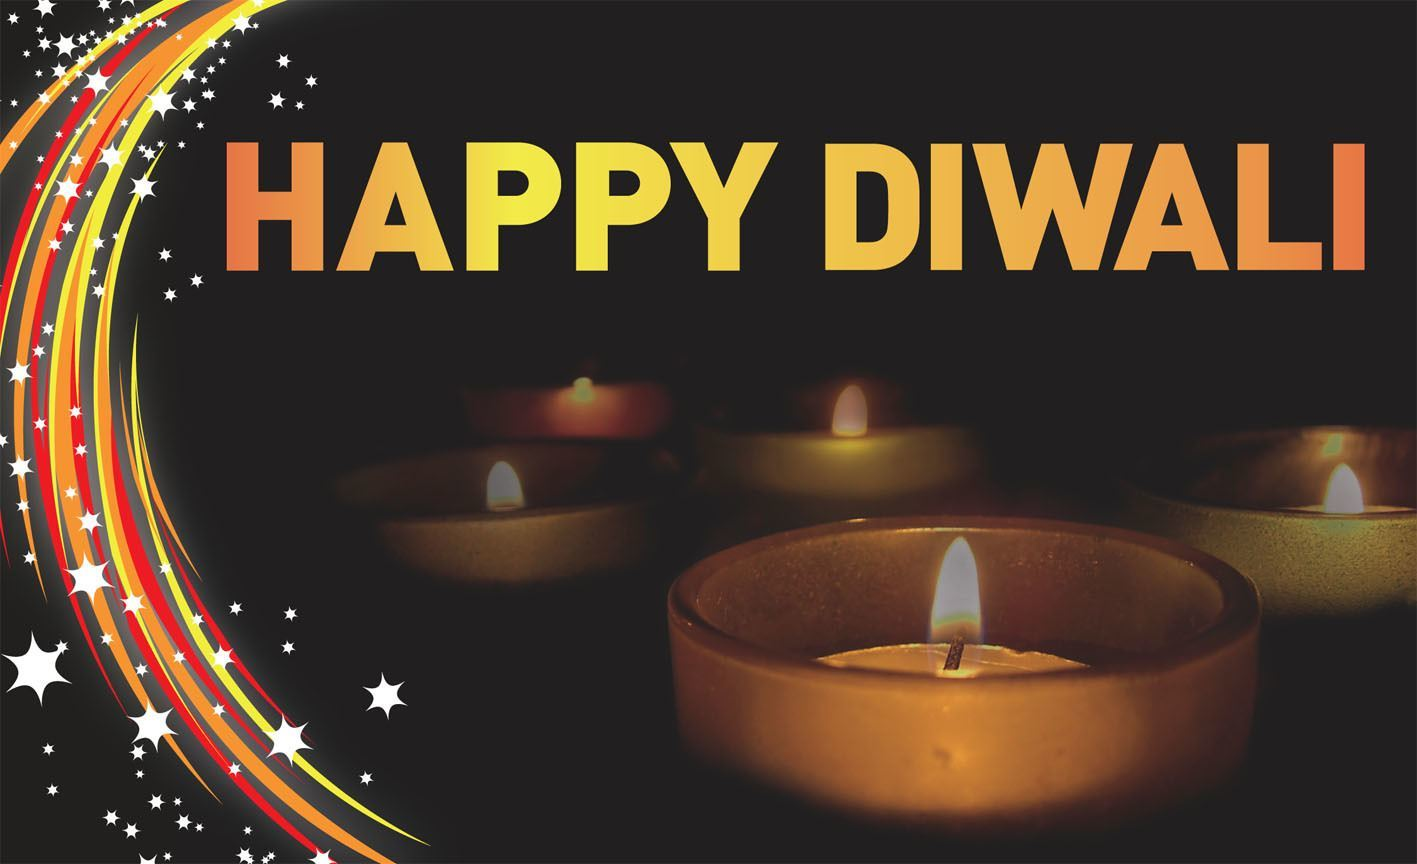 Wallpaper download diwali -  Diwali White Wallpaper Banner_914x6096_65379